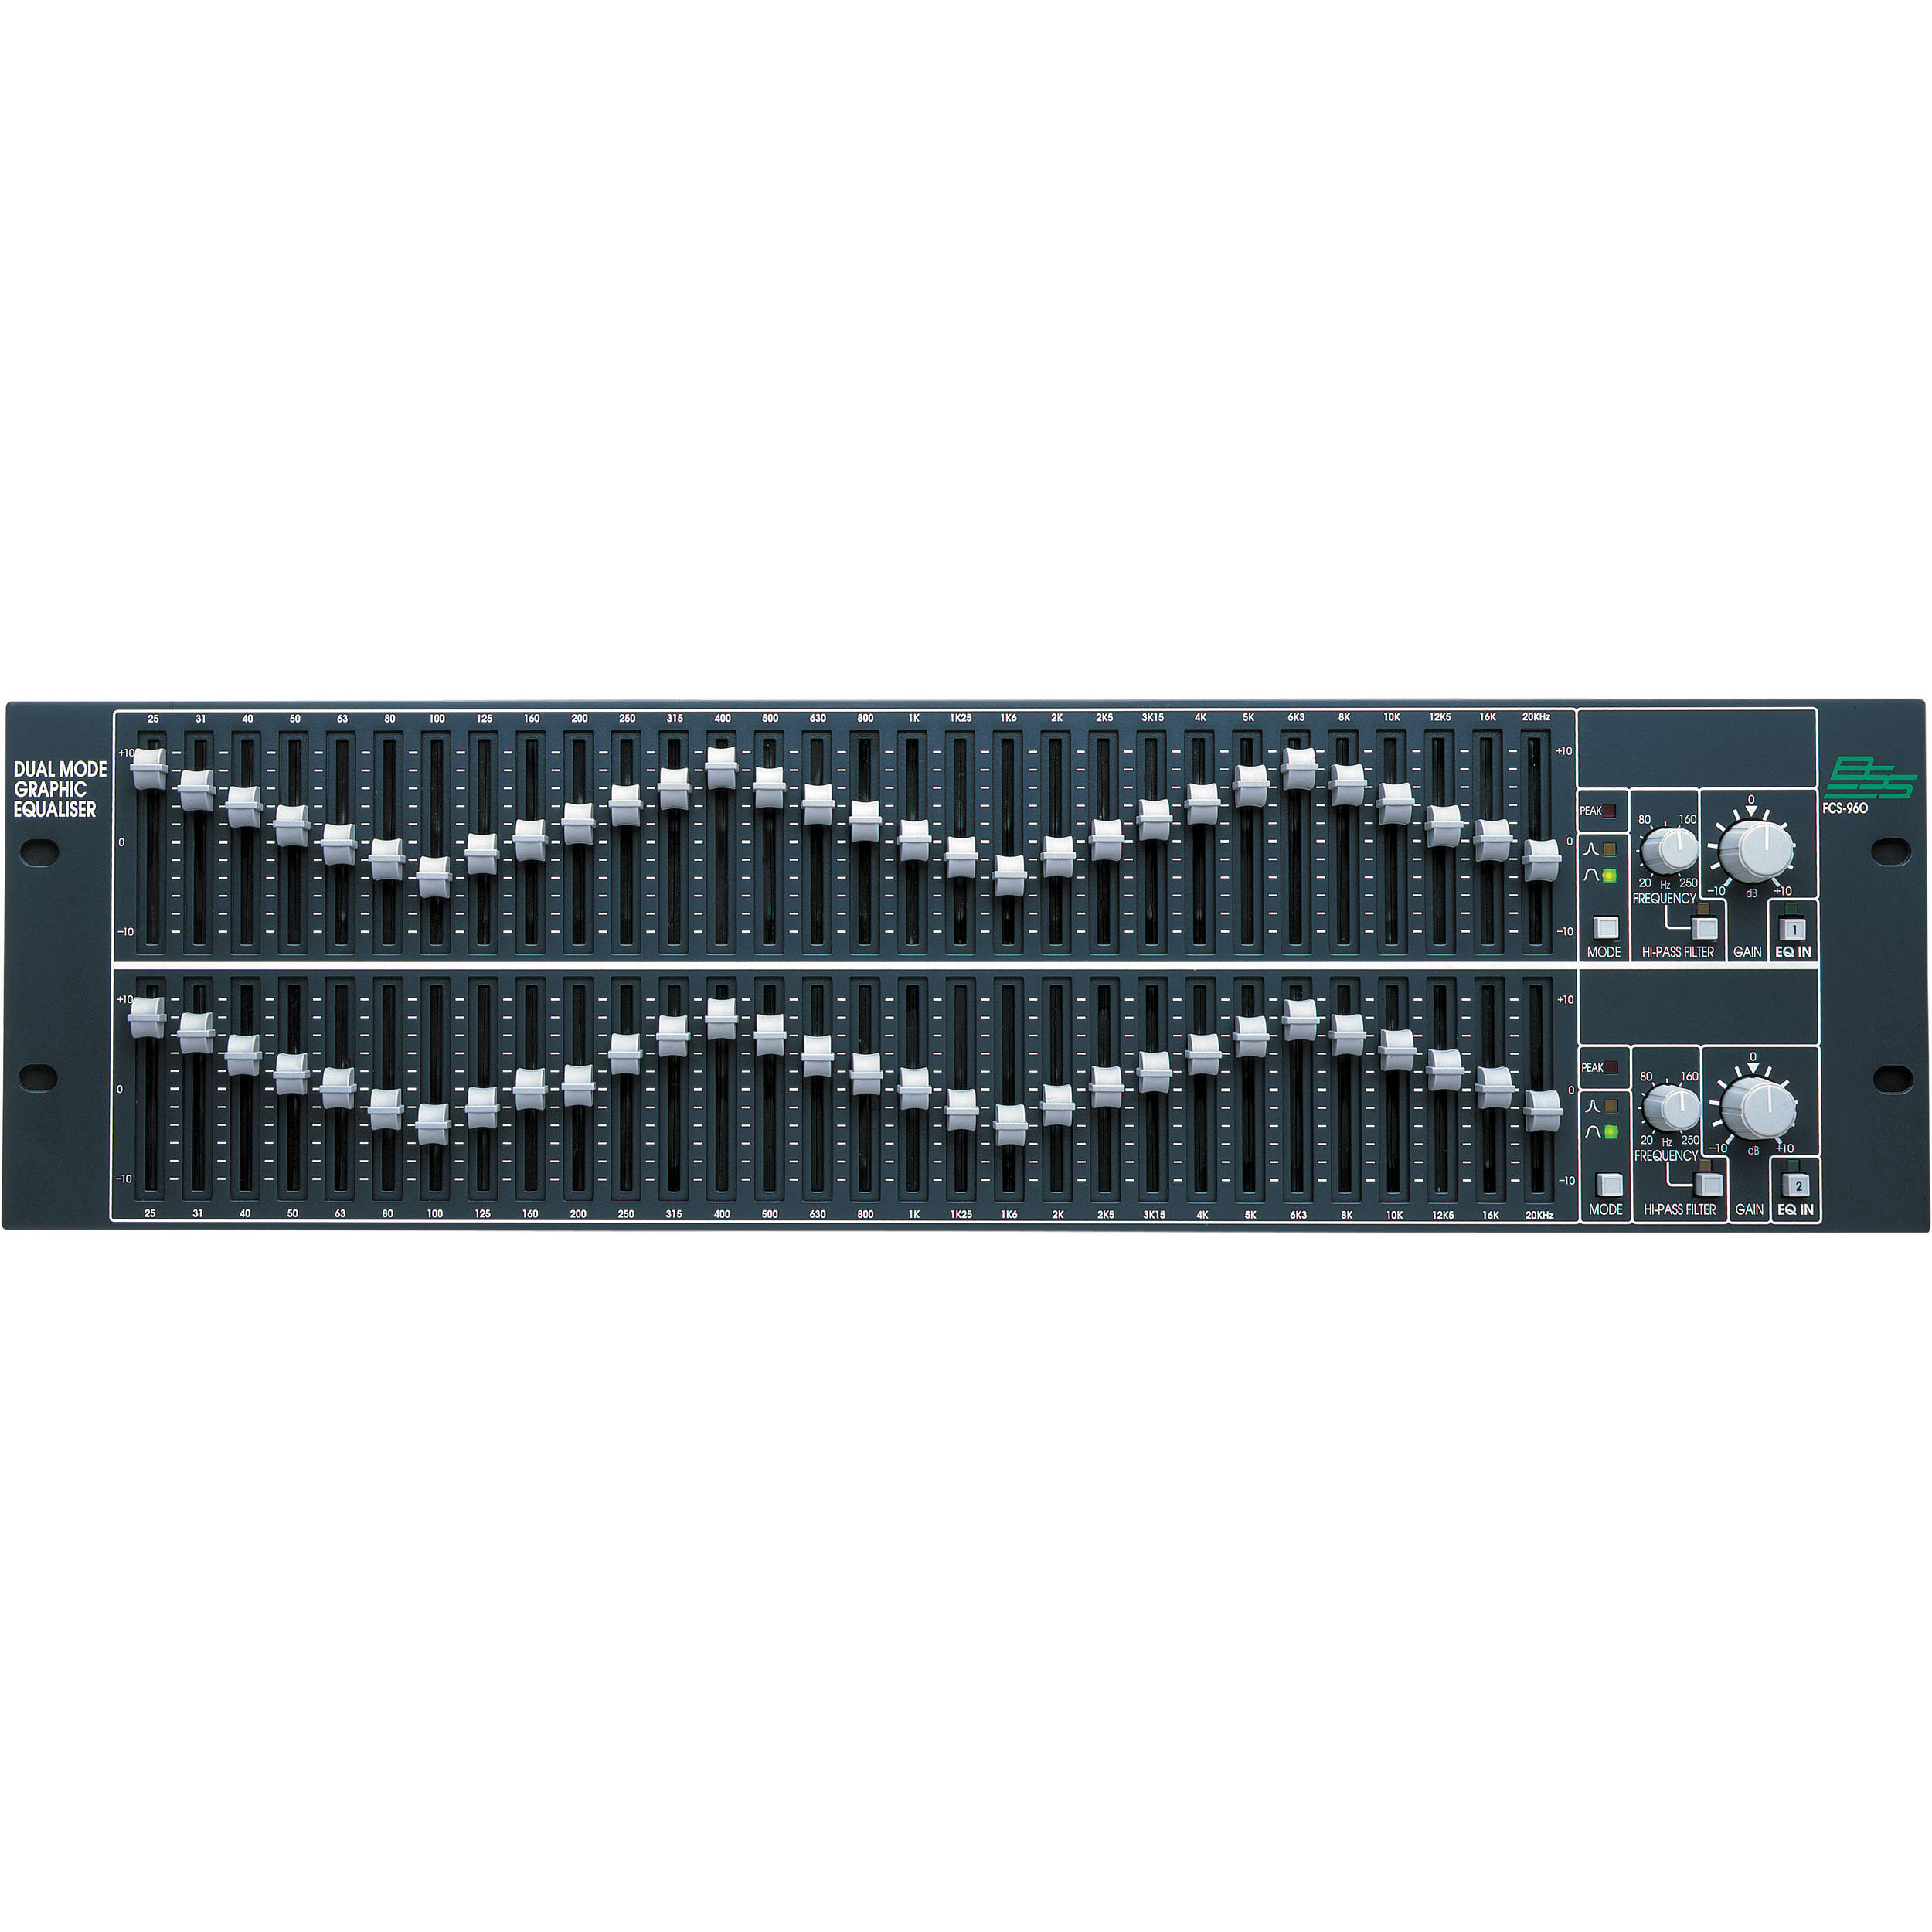 C Mark A907 231 Band Professional Graphic Equalizer 2 5 Channels Octave Equaliser By 4558 Dbx Bss Fcs 960 Dual Mode Channel